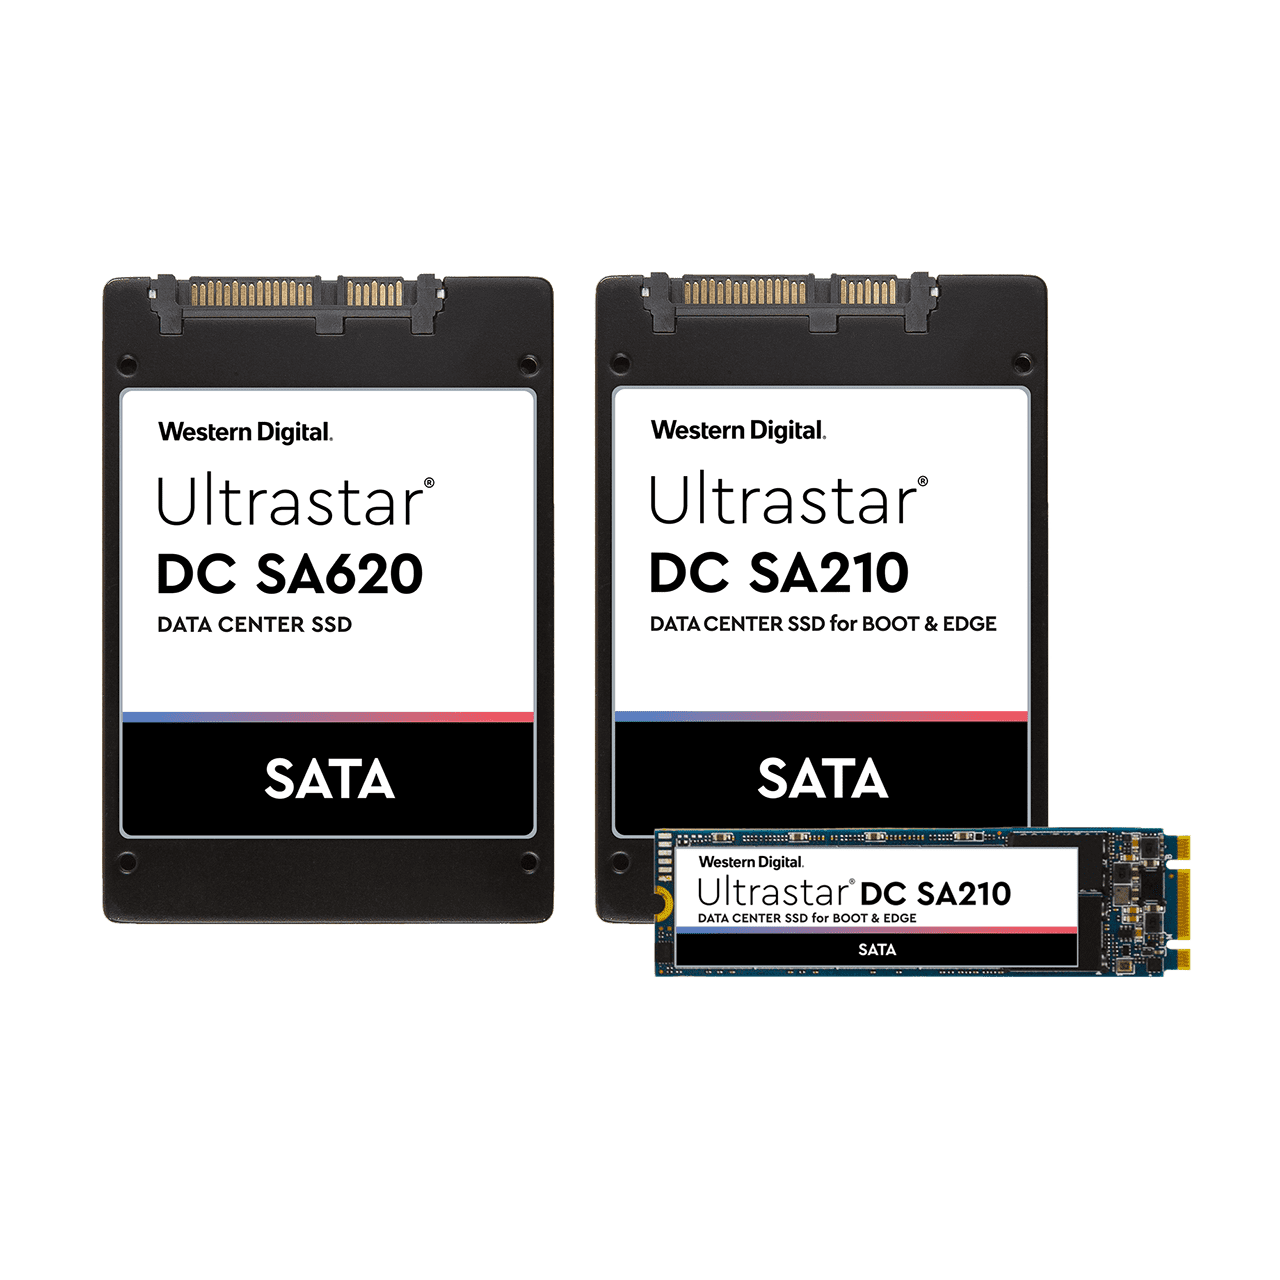 Ultrastar SATA Series SSD